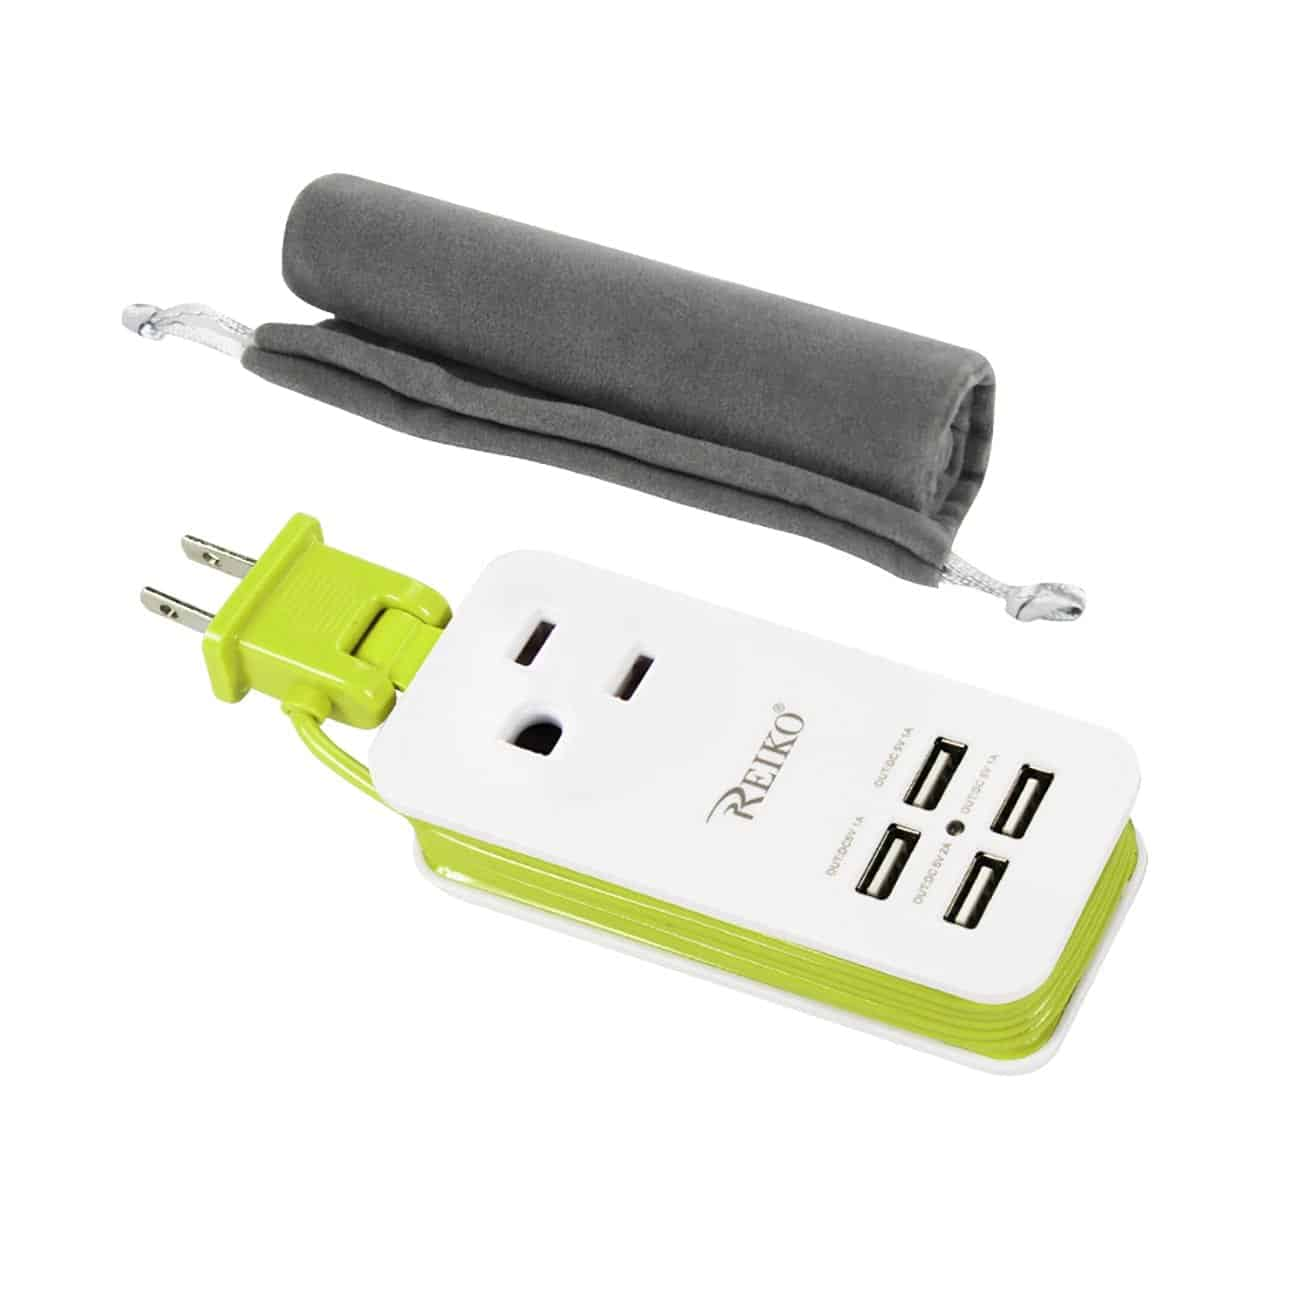 4 AMP HOME TRAVEL CHARGING STATION IN GREEN